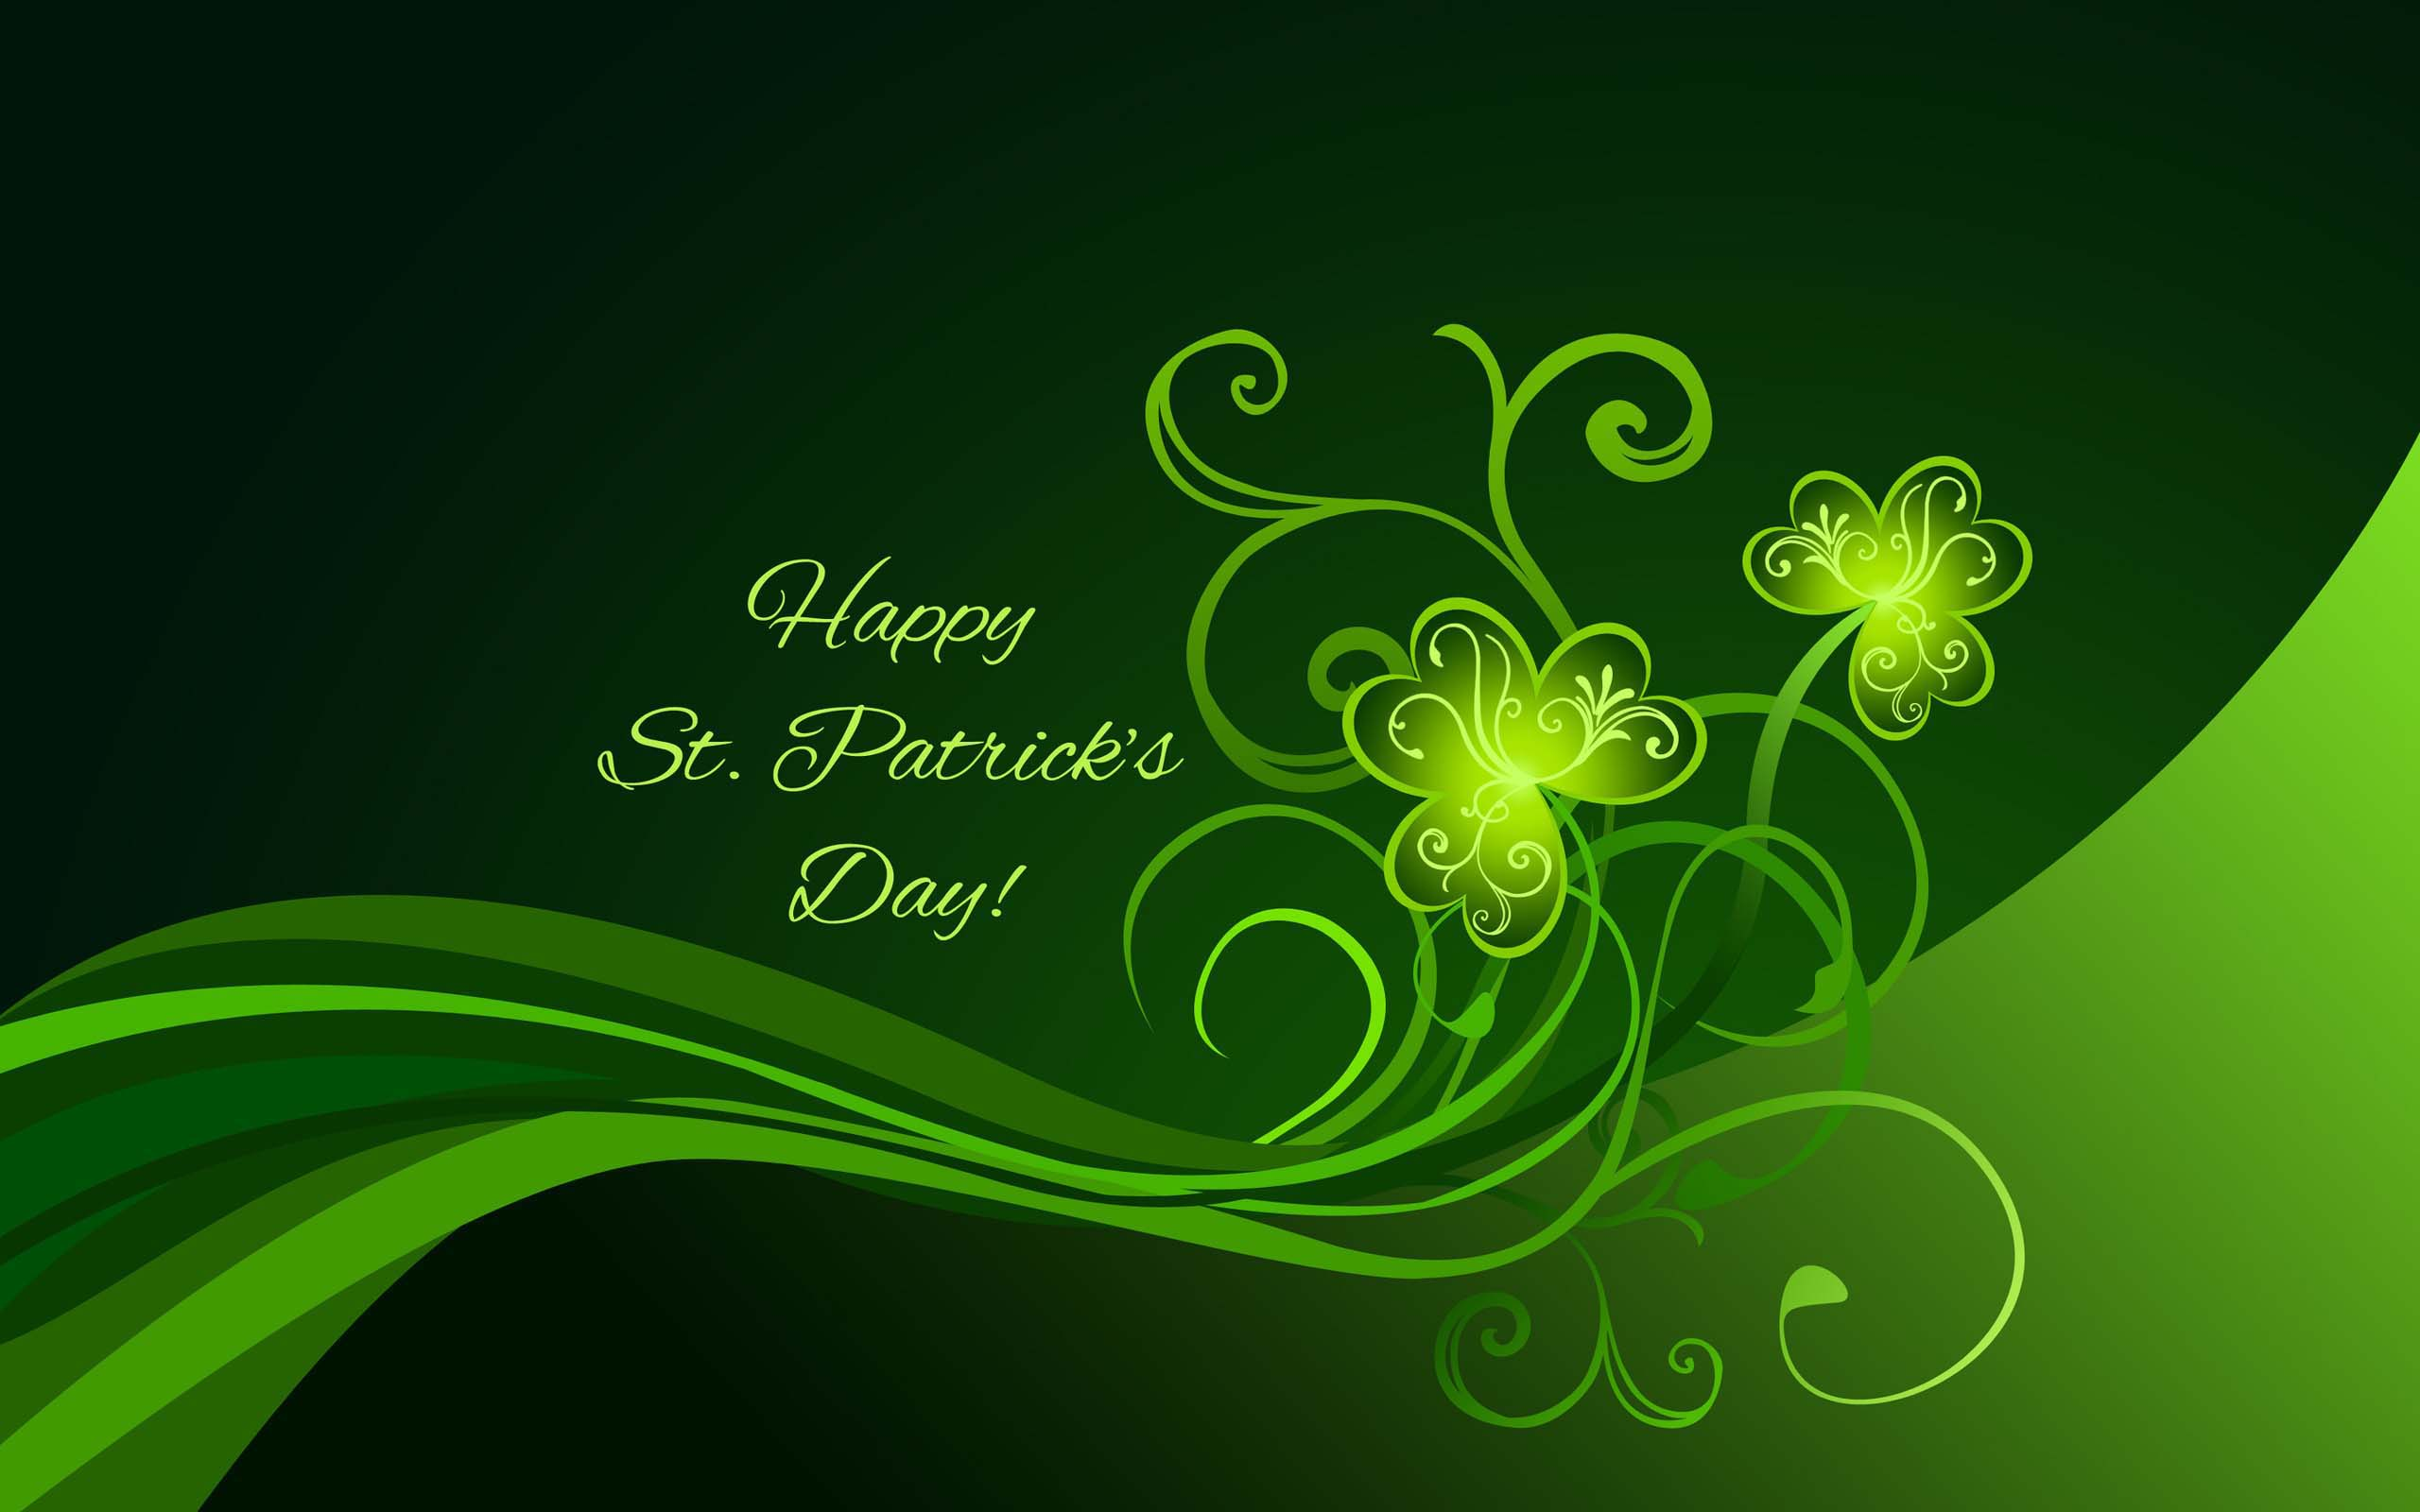 Happy St Patricks Day PC Wallpaper 2880x1800   Cool PC 2560x1600